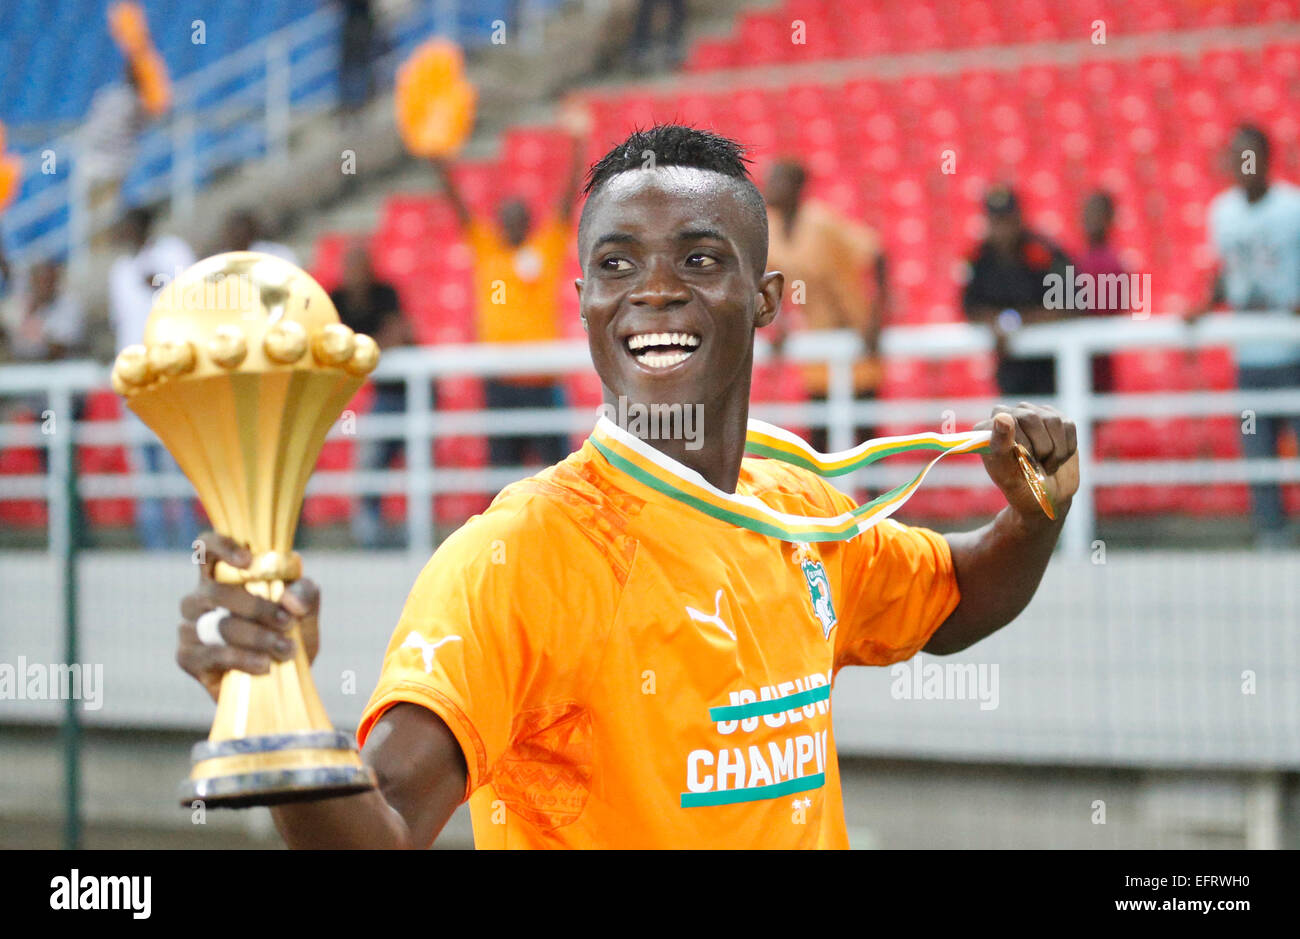 Espanyol defender Eric Bailly celebrates winning the Africa Cup of